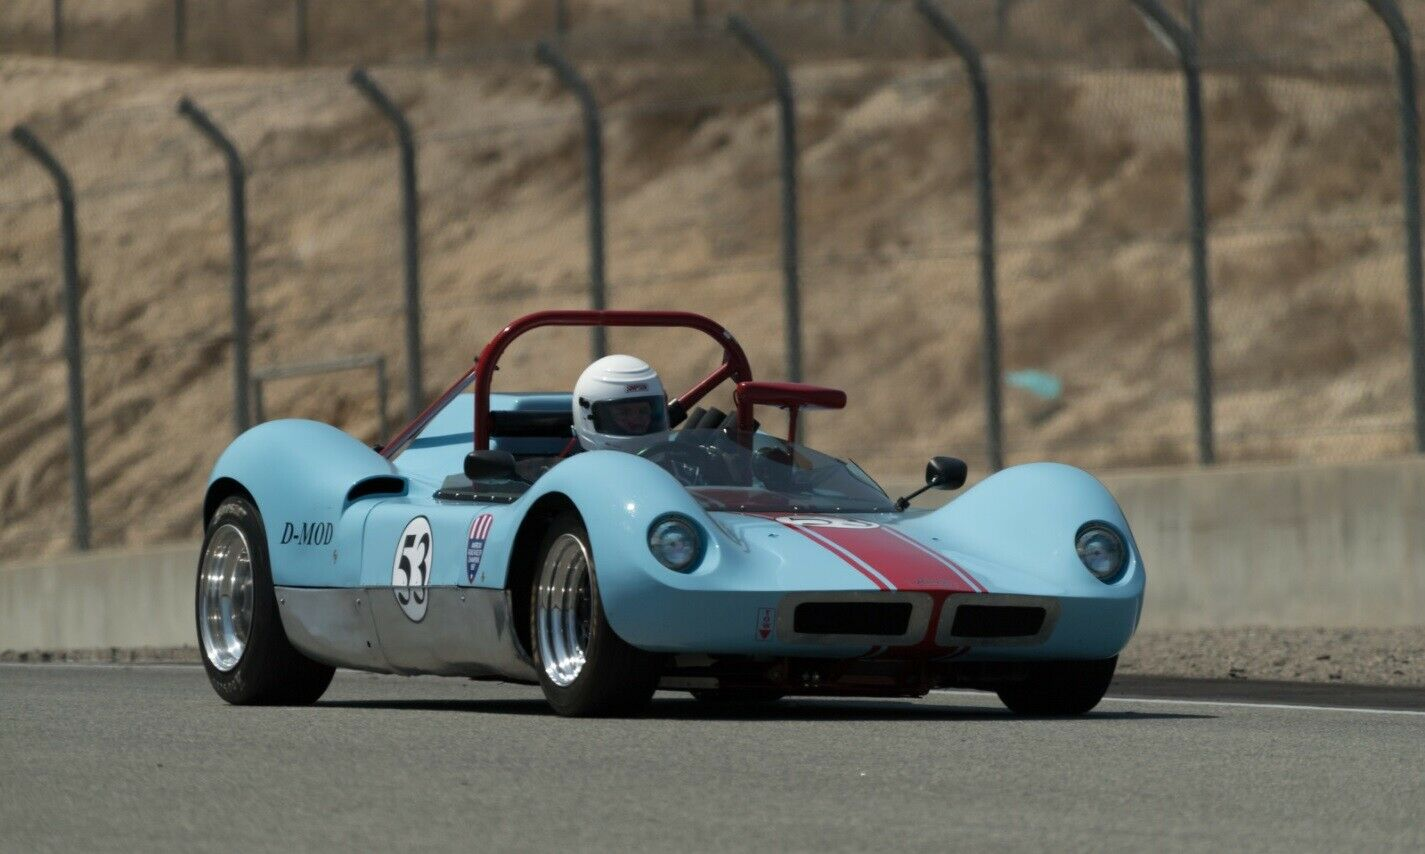 Buy It: The 1965 Koch Special Is An Incredible Window Into The Era Of Homebuilt American Sports Race Cars